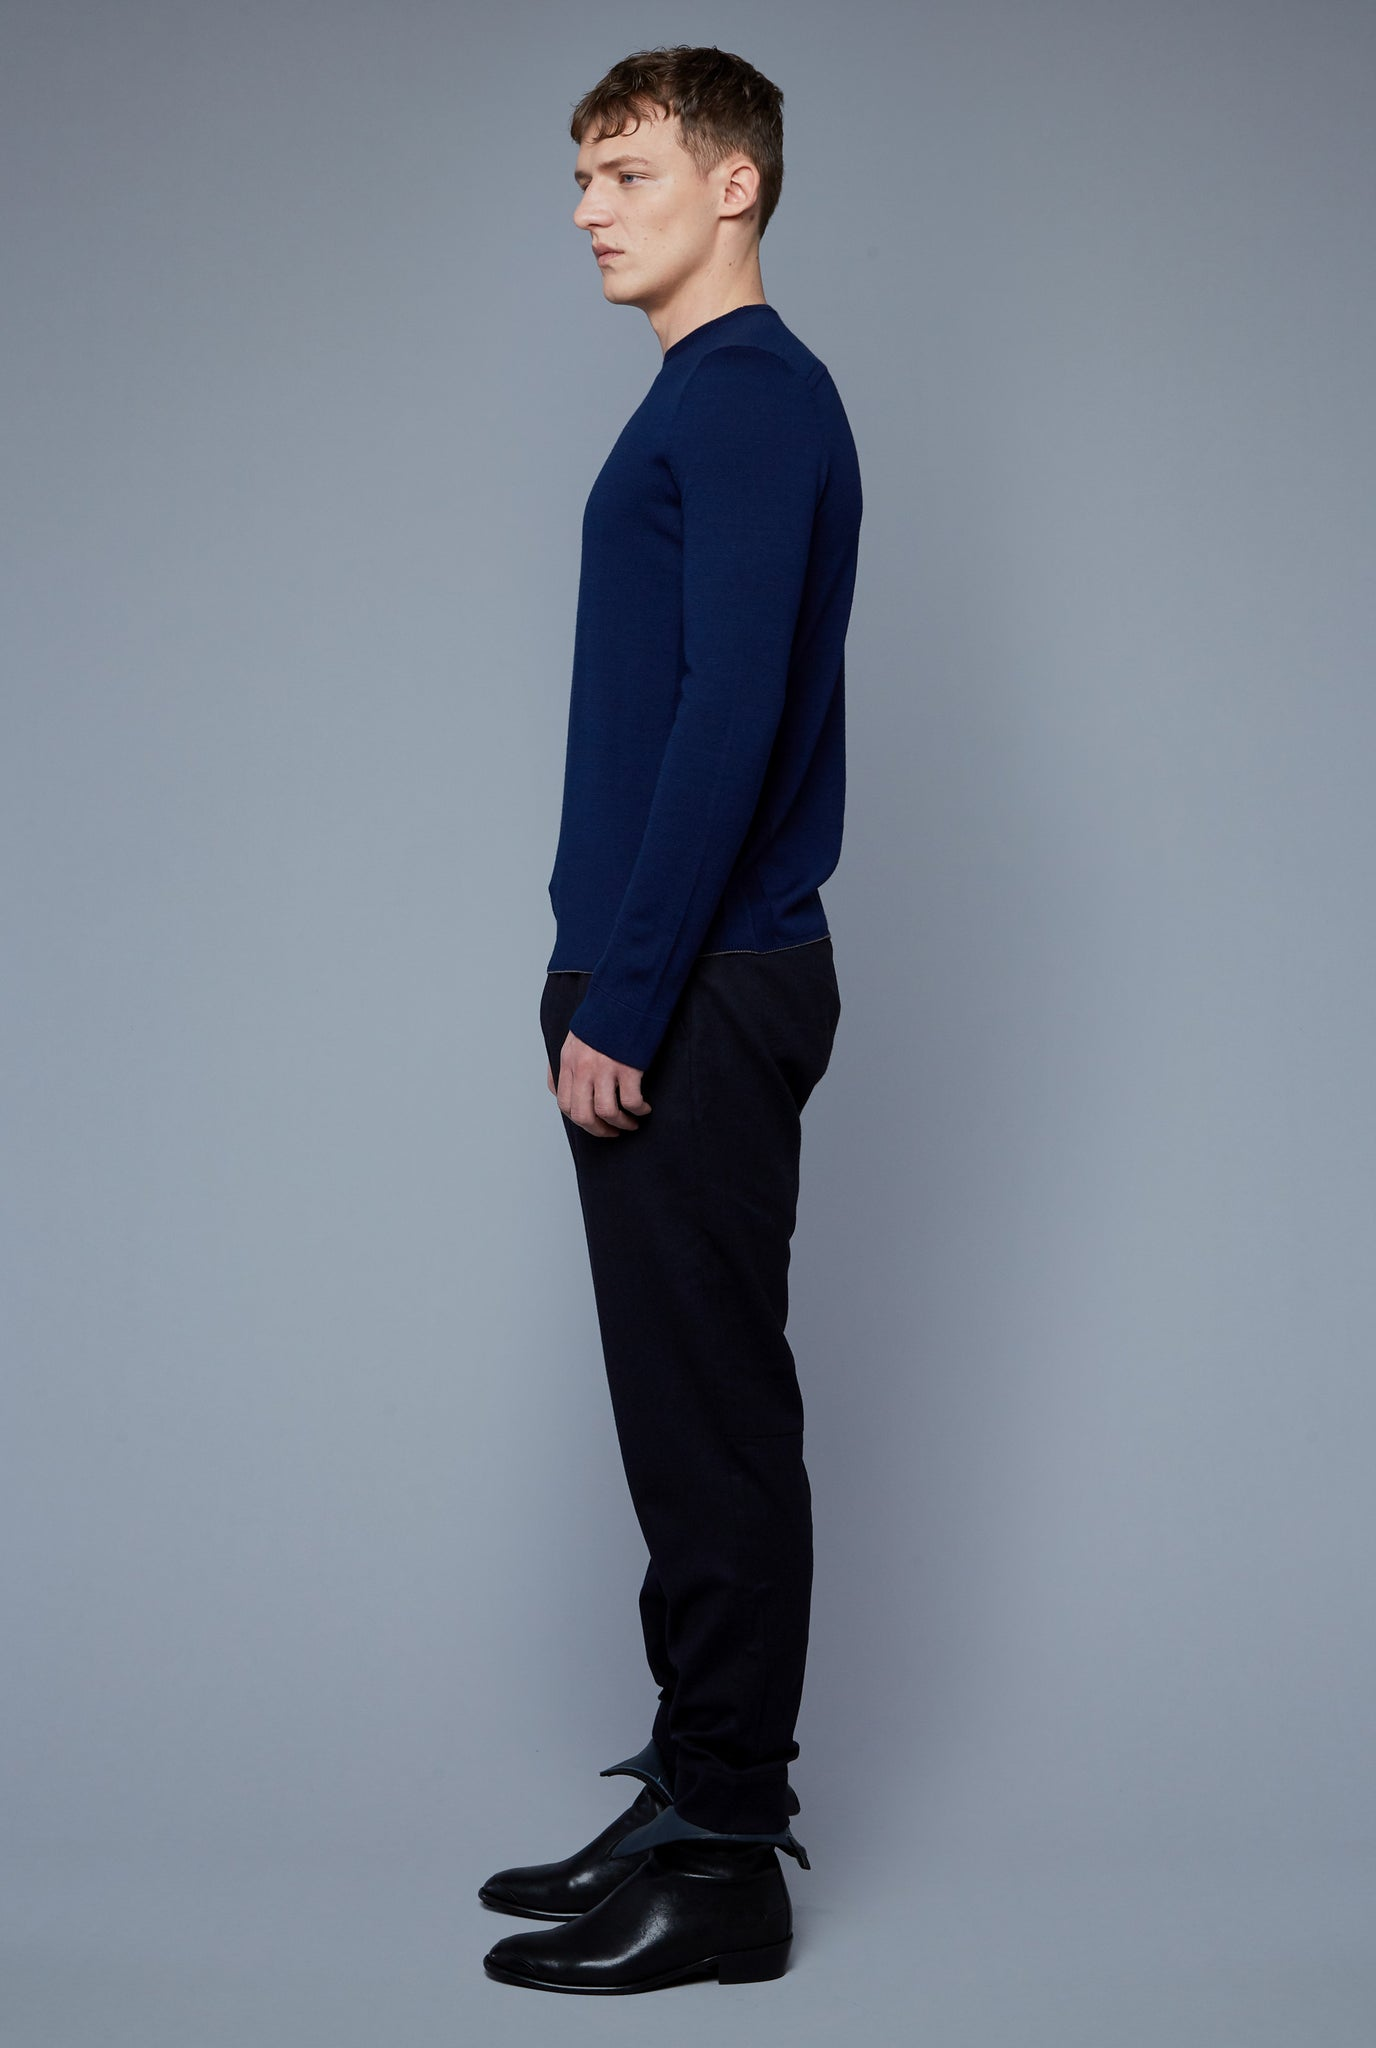 Side View: Model Milos Drago wearing Long Sleeve Sweater Tee